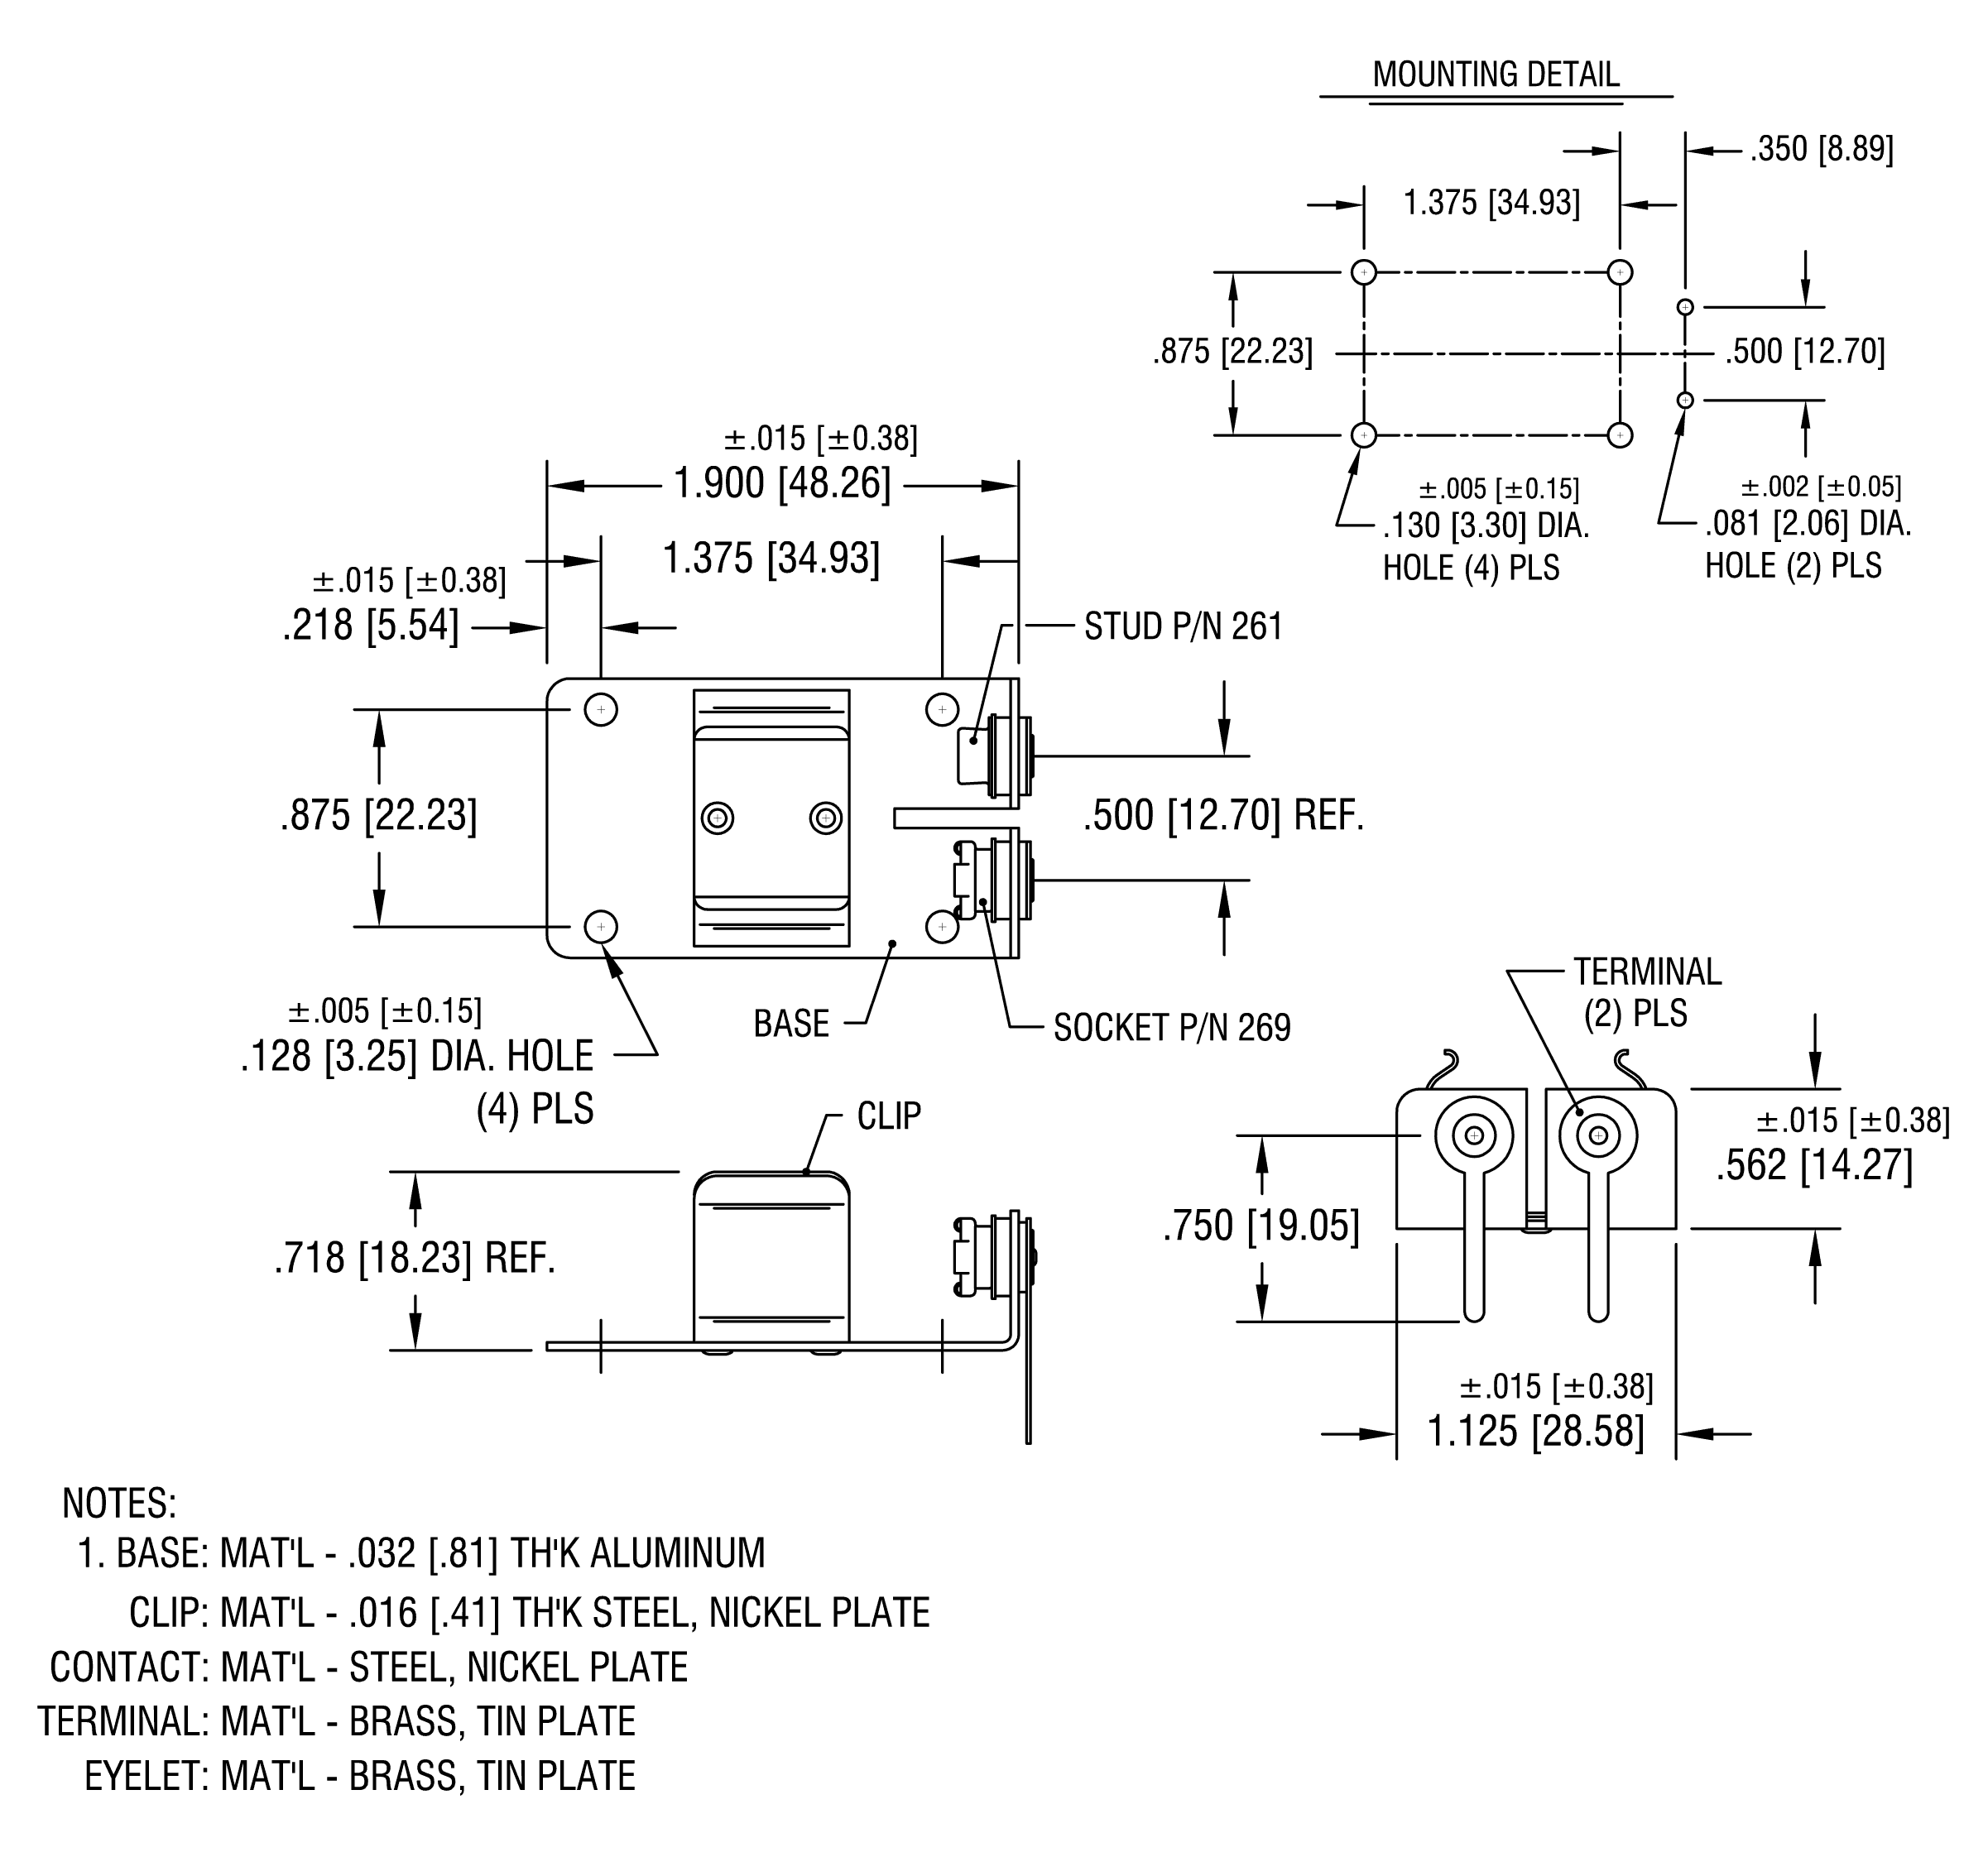 metal-9v-battery-clip-horizontal-holder-connector-with-pcb-pins-dimensions